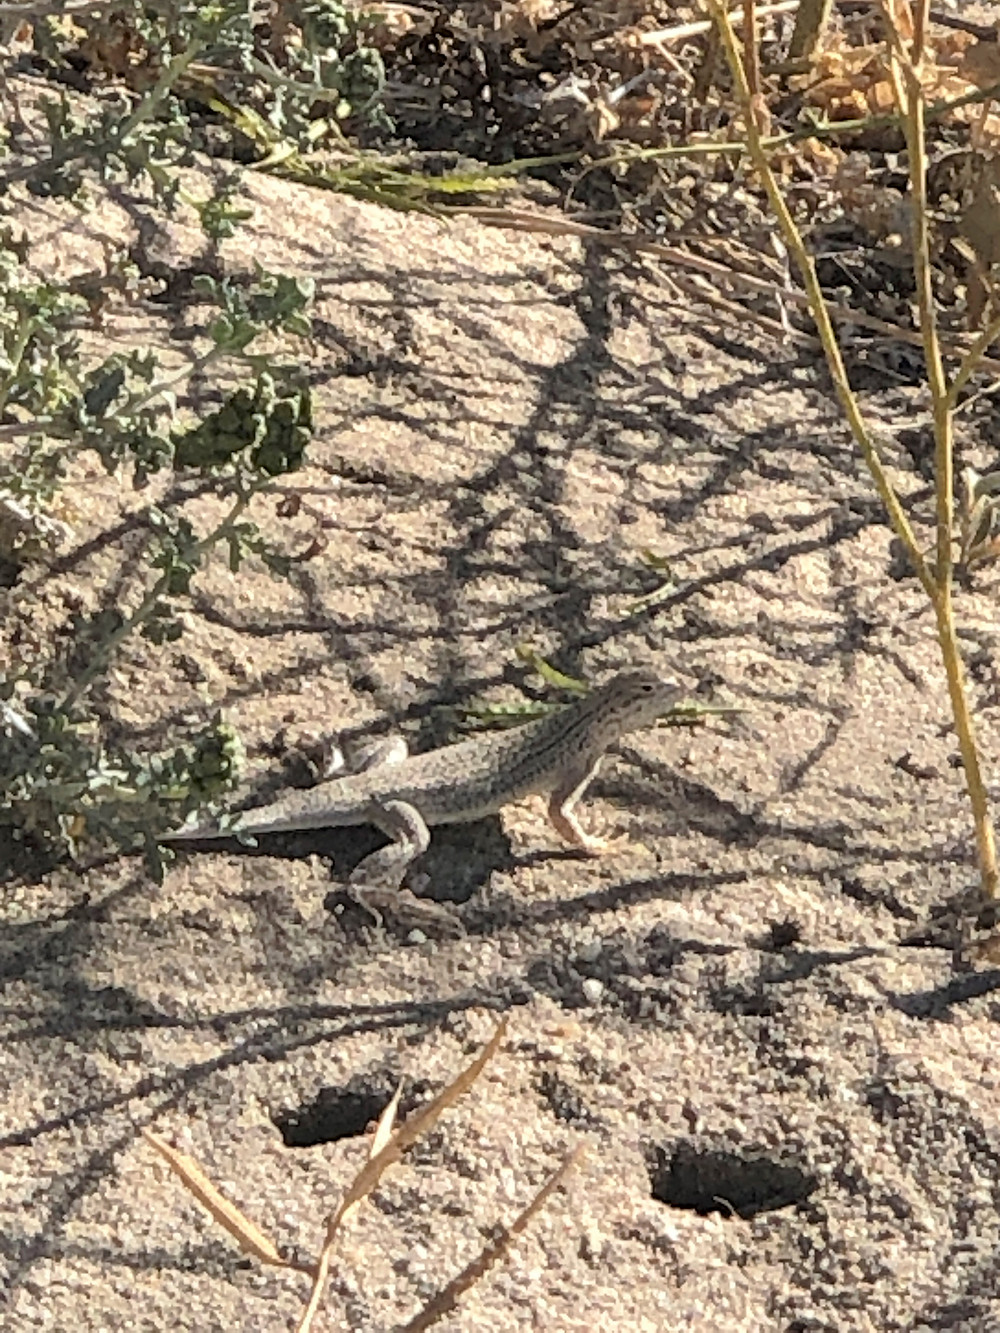 Coachella Valley Fringed-toed Lizard along the Kim Nichols Trail in the Indio Hills.